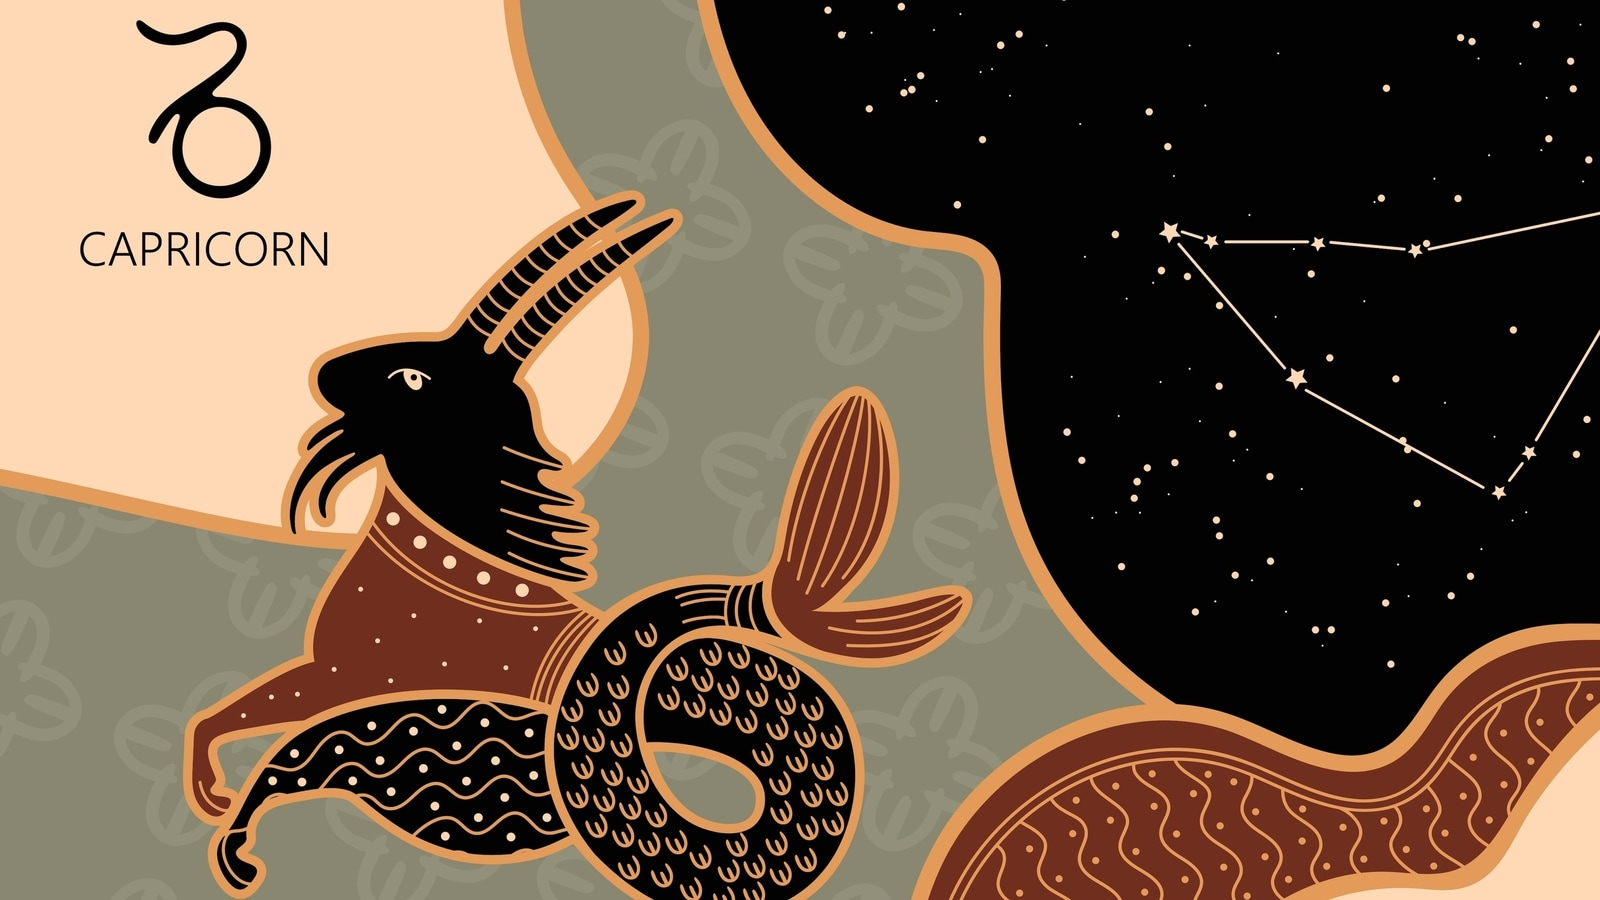 Capricorn Daily Horoscope for Sept 20 We see hurdles in your path ...